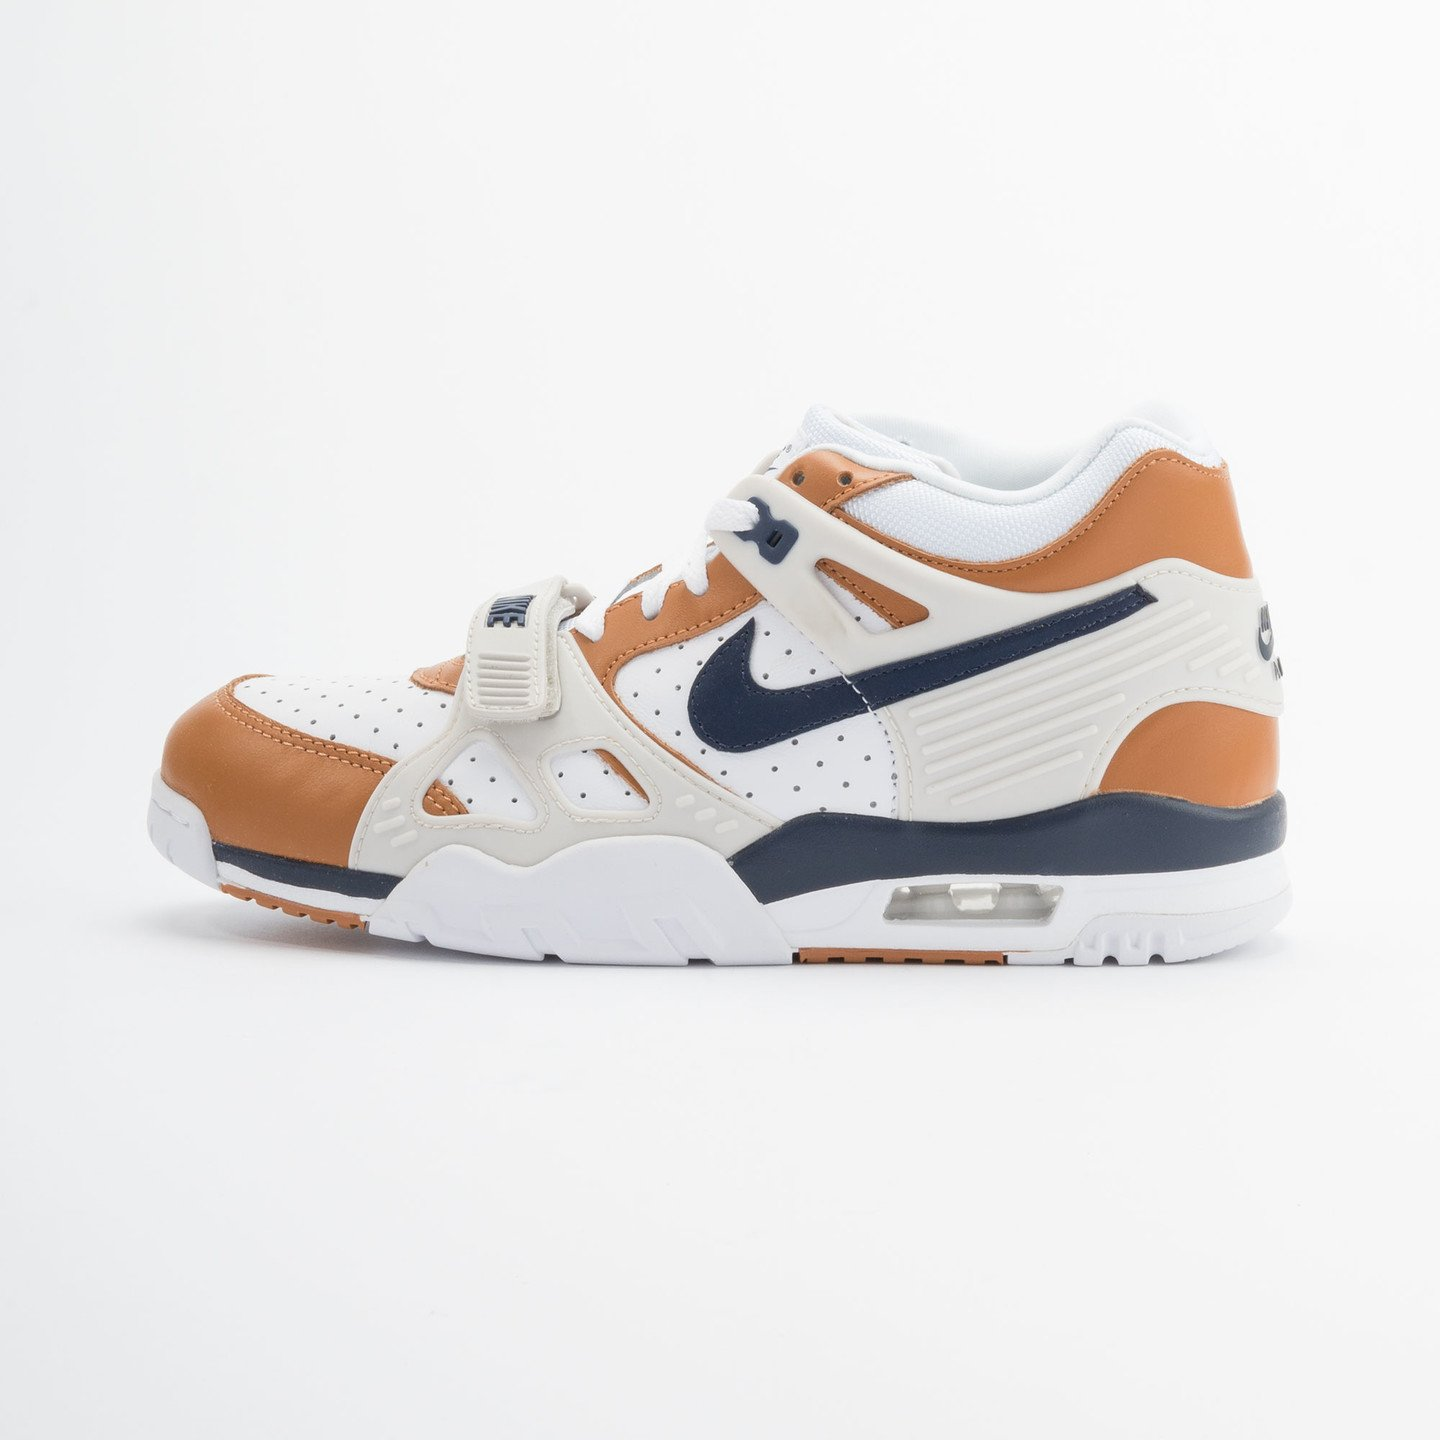 Nike Air Trainer 3 Premium Medicine Ball White/Mid Navy-Gngr-Lght Bn 705425-100-43